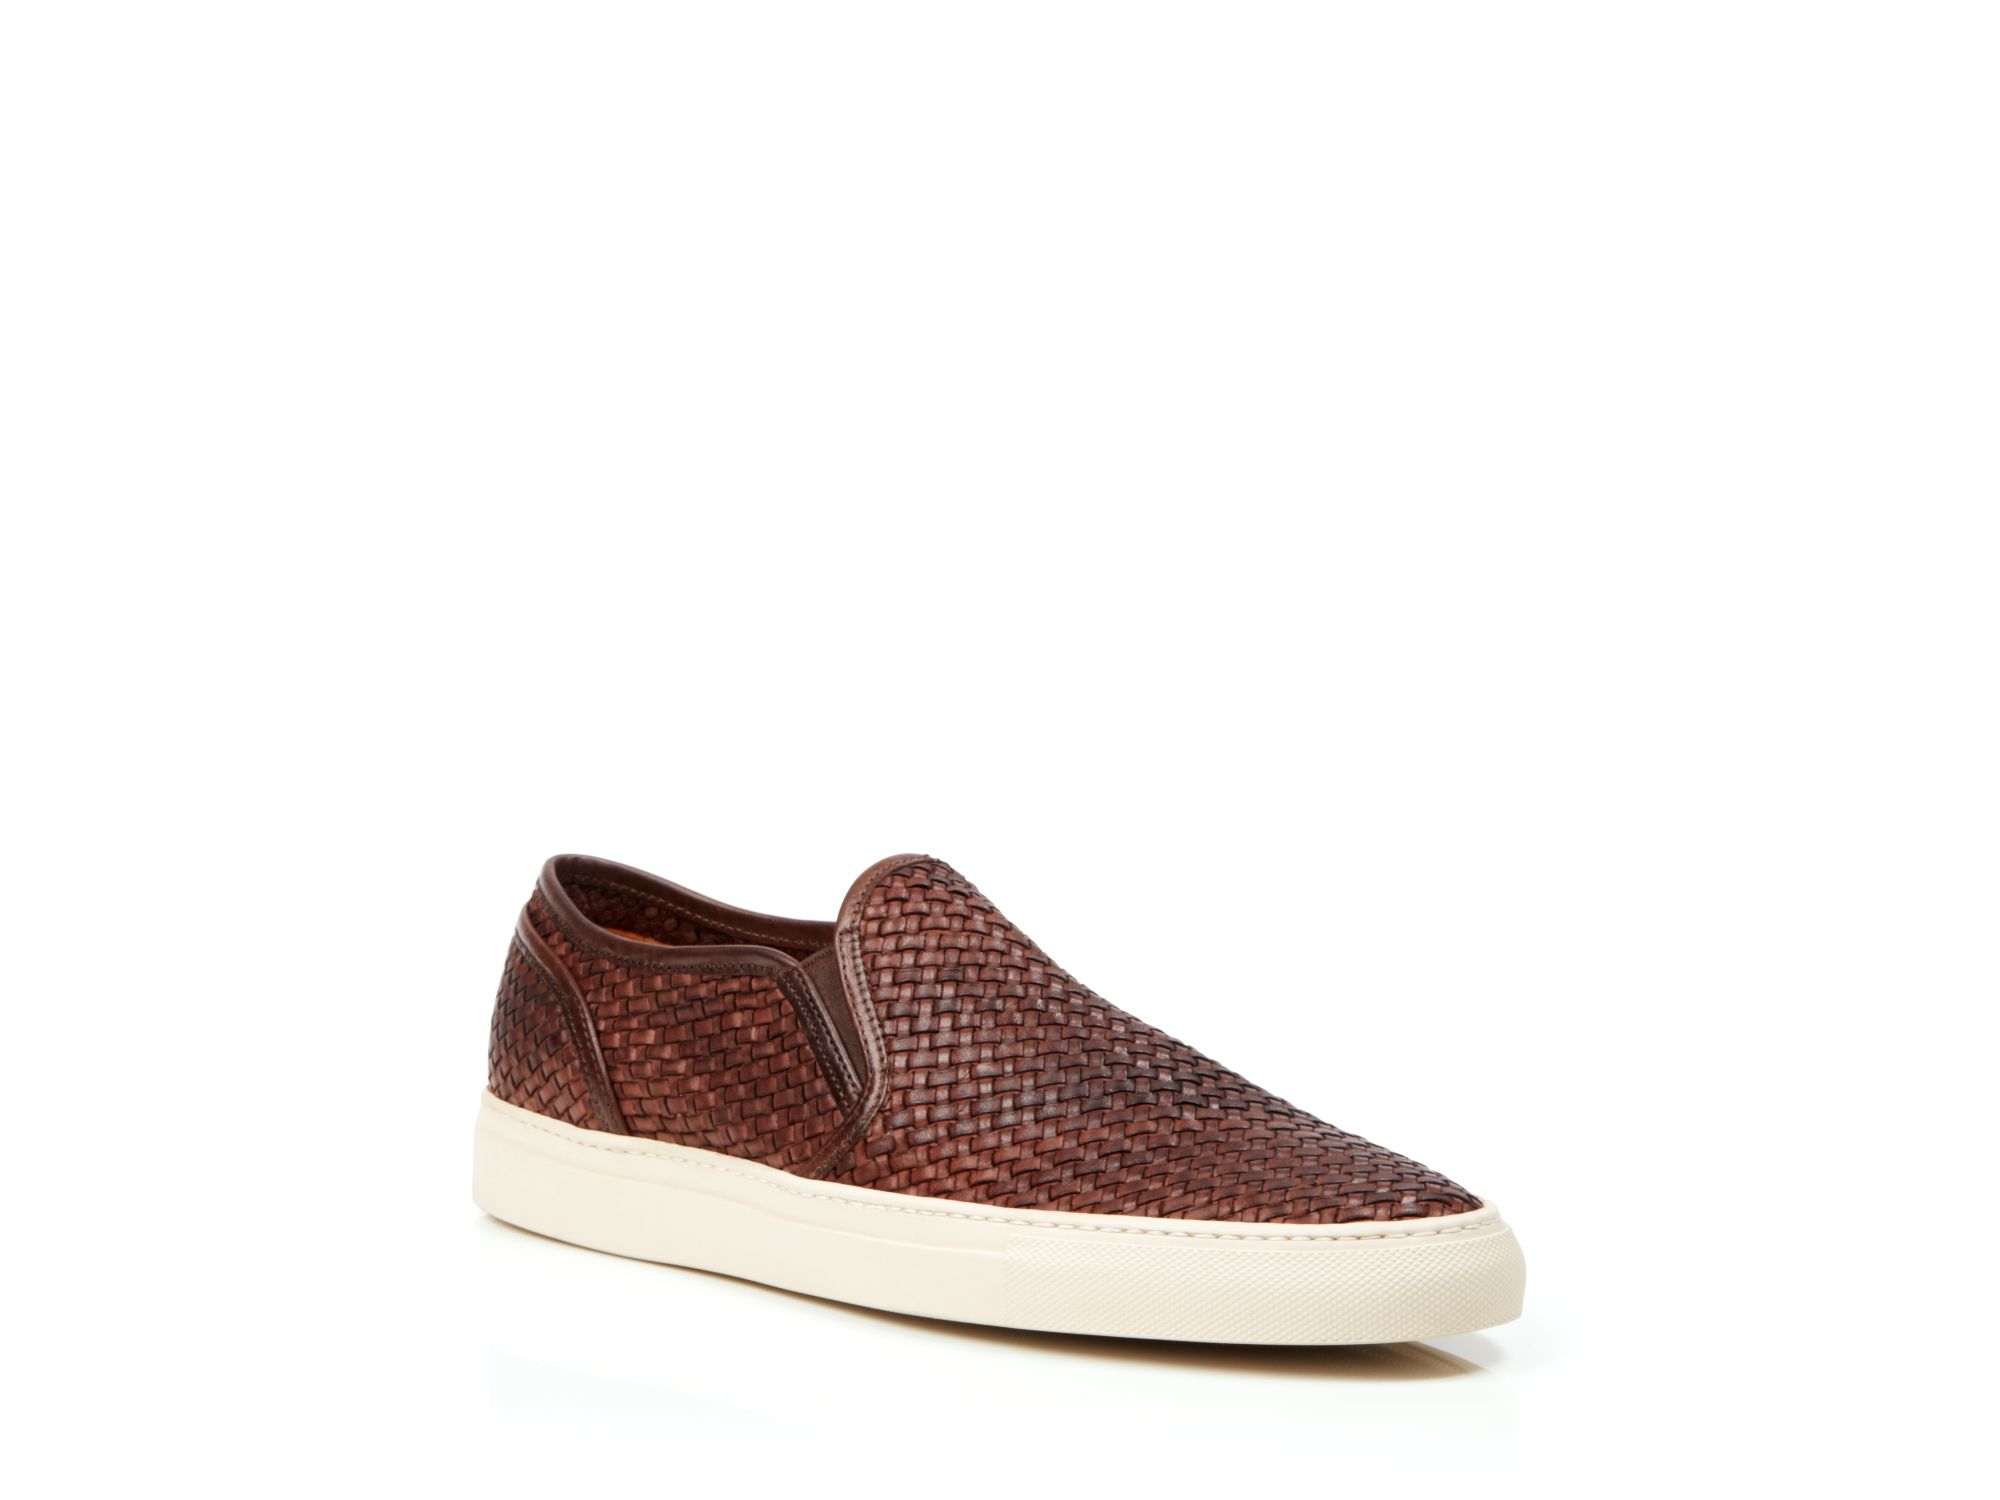 slip-on sneakers - White Buttero